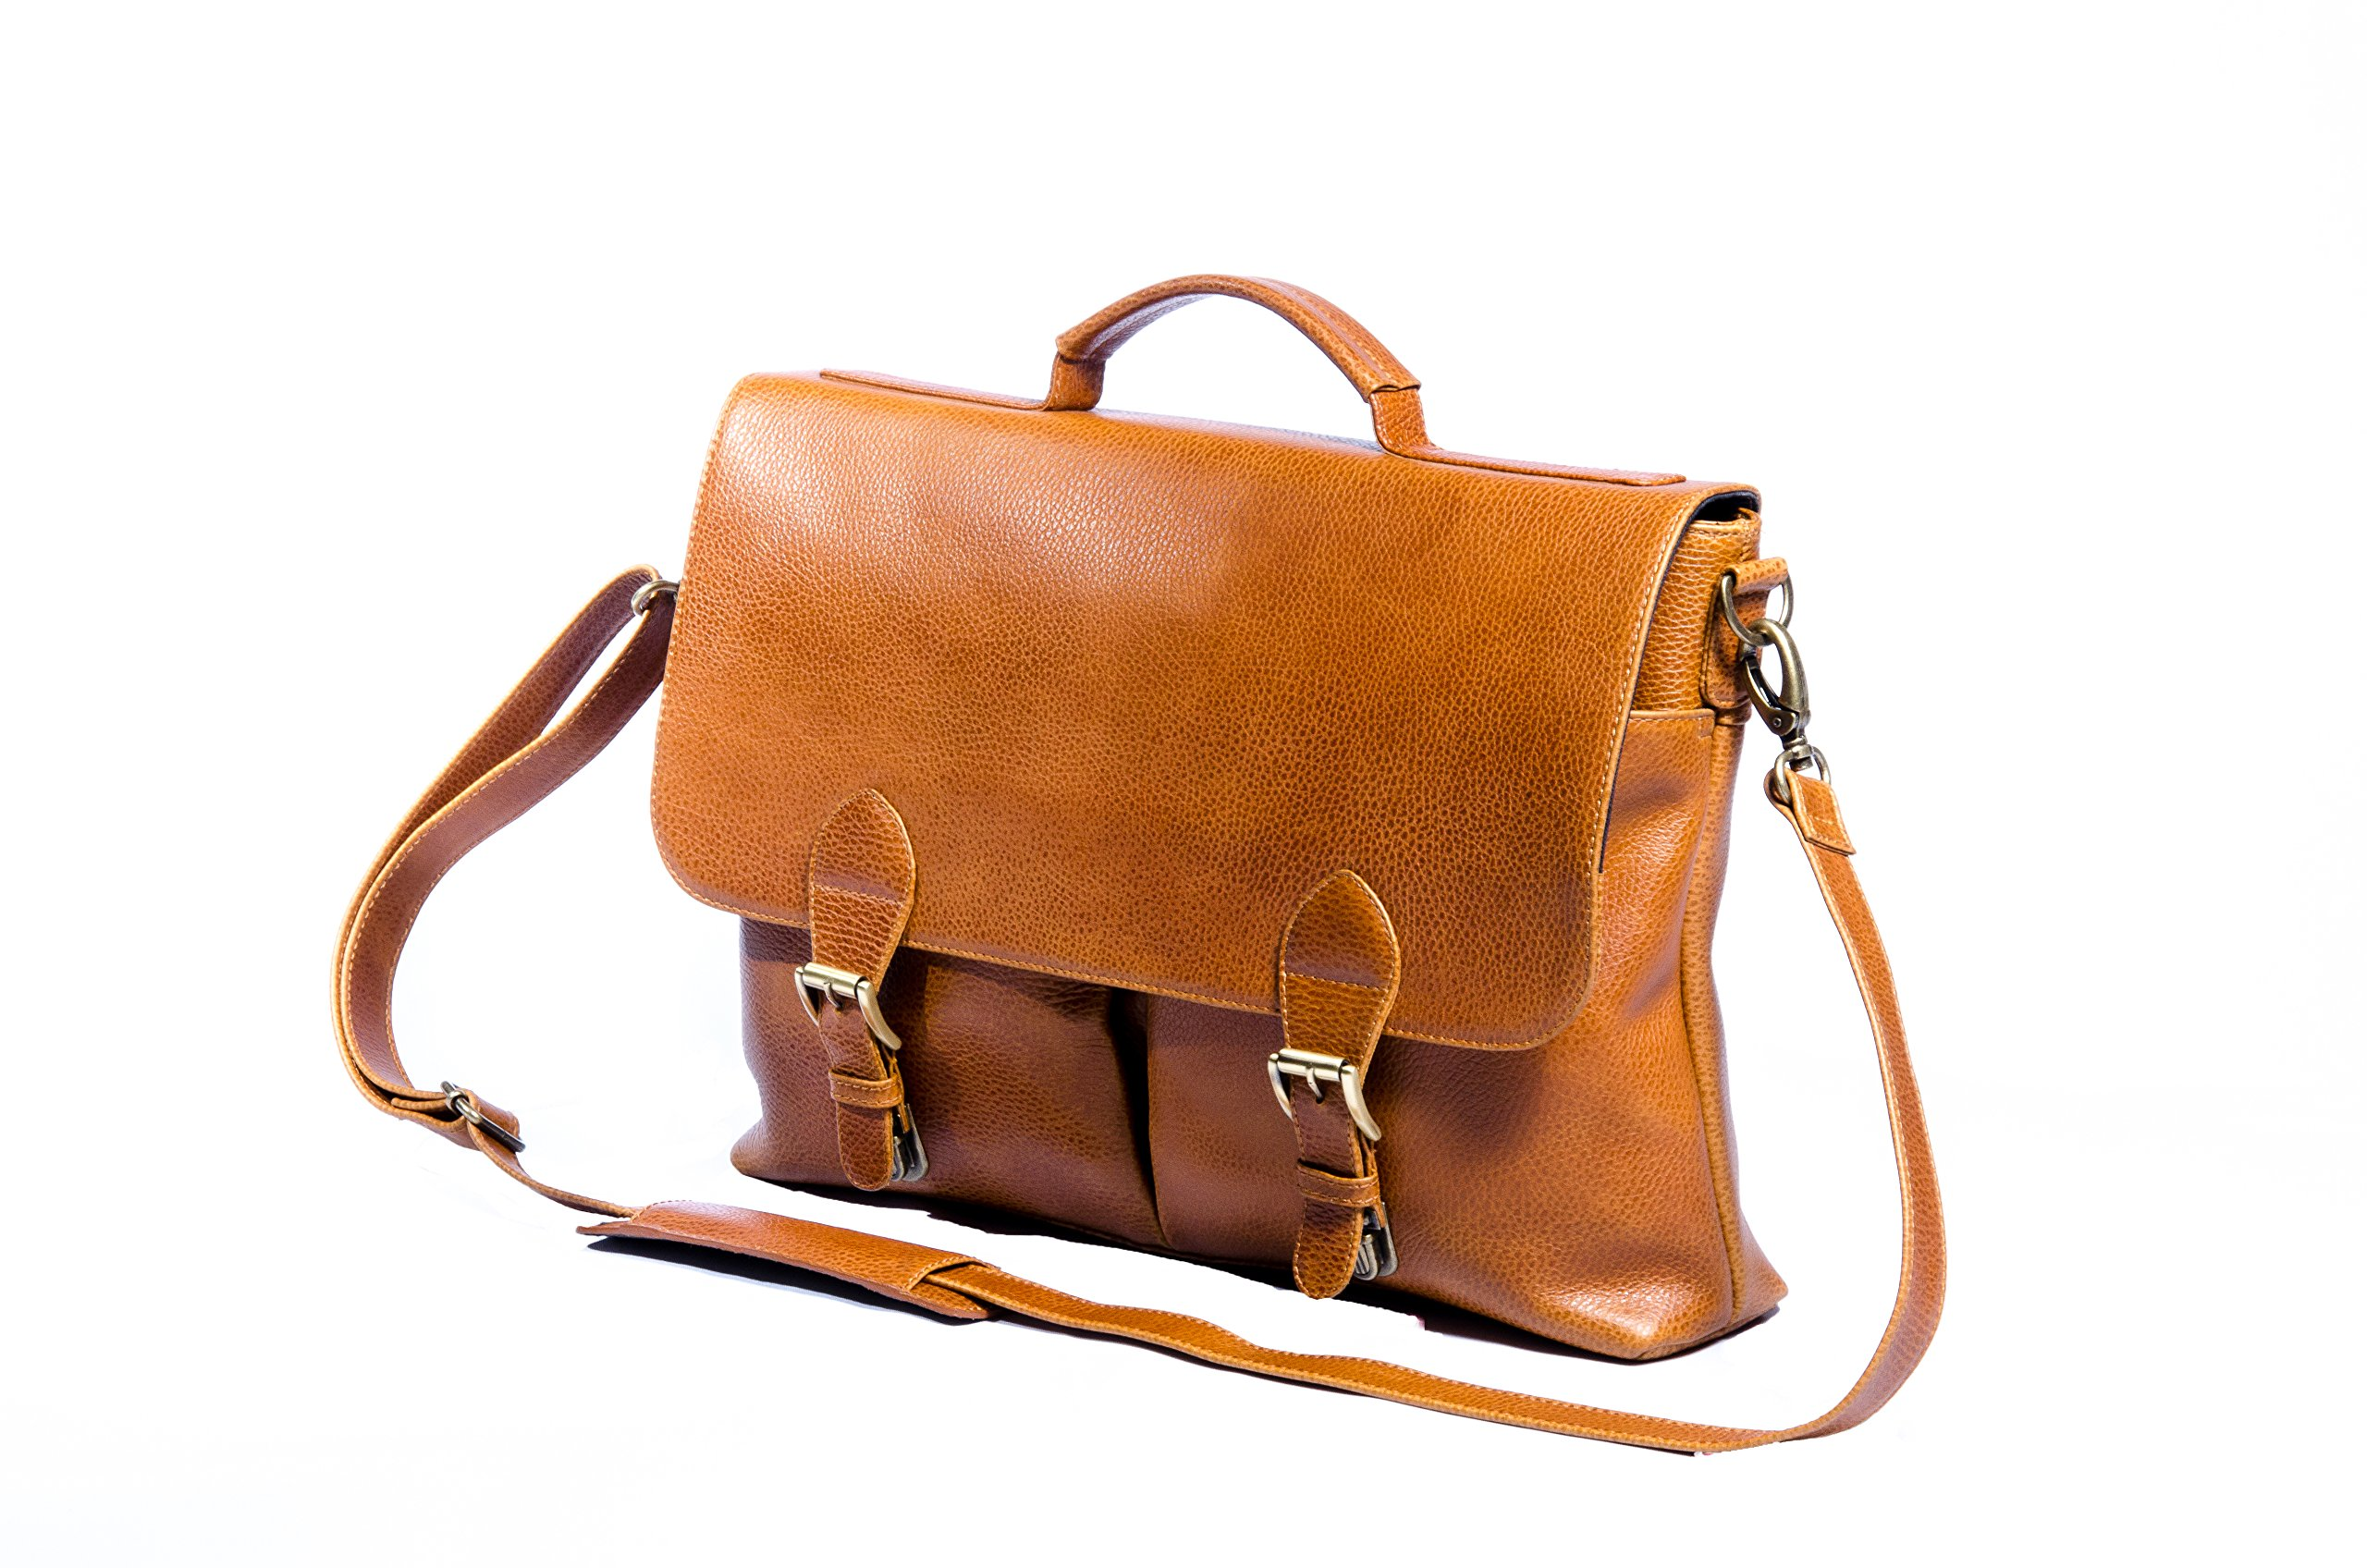 Leather Messenger Bag for men | Executive Laptop Briefcase for Business and Work Office | Durable & Stylish Satchel Bag by MA&B by MA&B